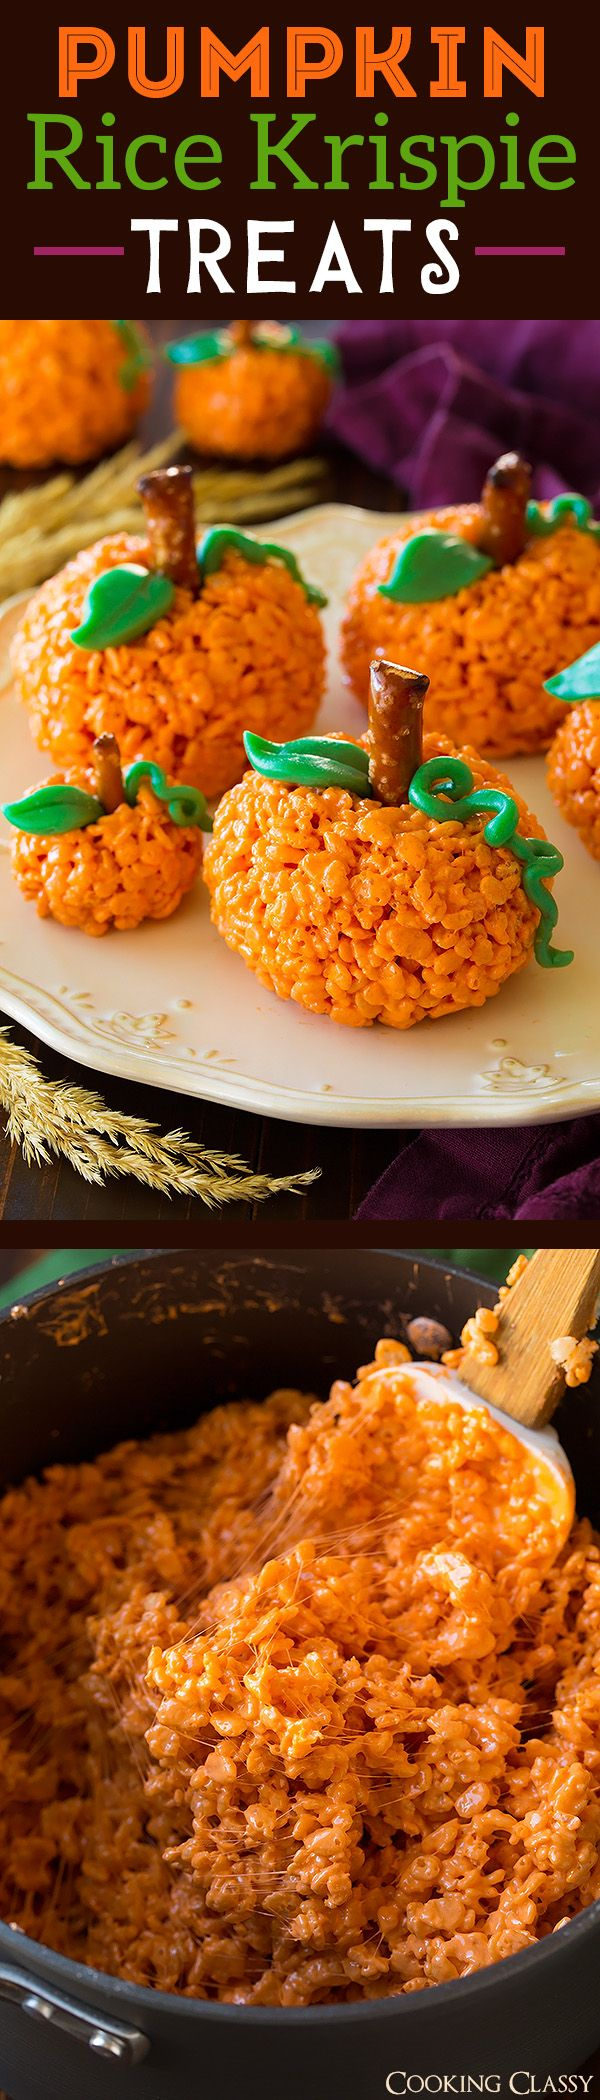 Pumpkin Rice Krispie Treats - such a fun and easy fall treat! My kids loved these!